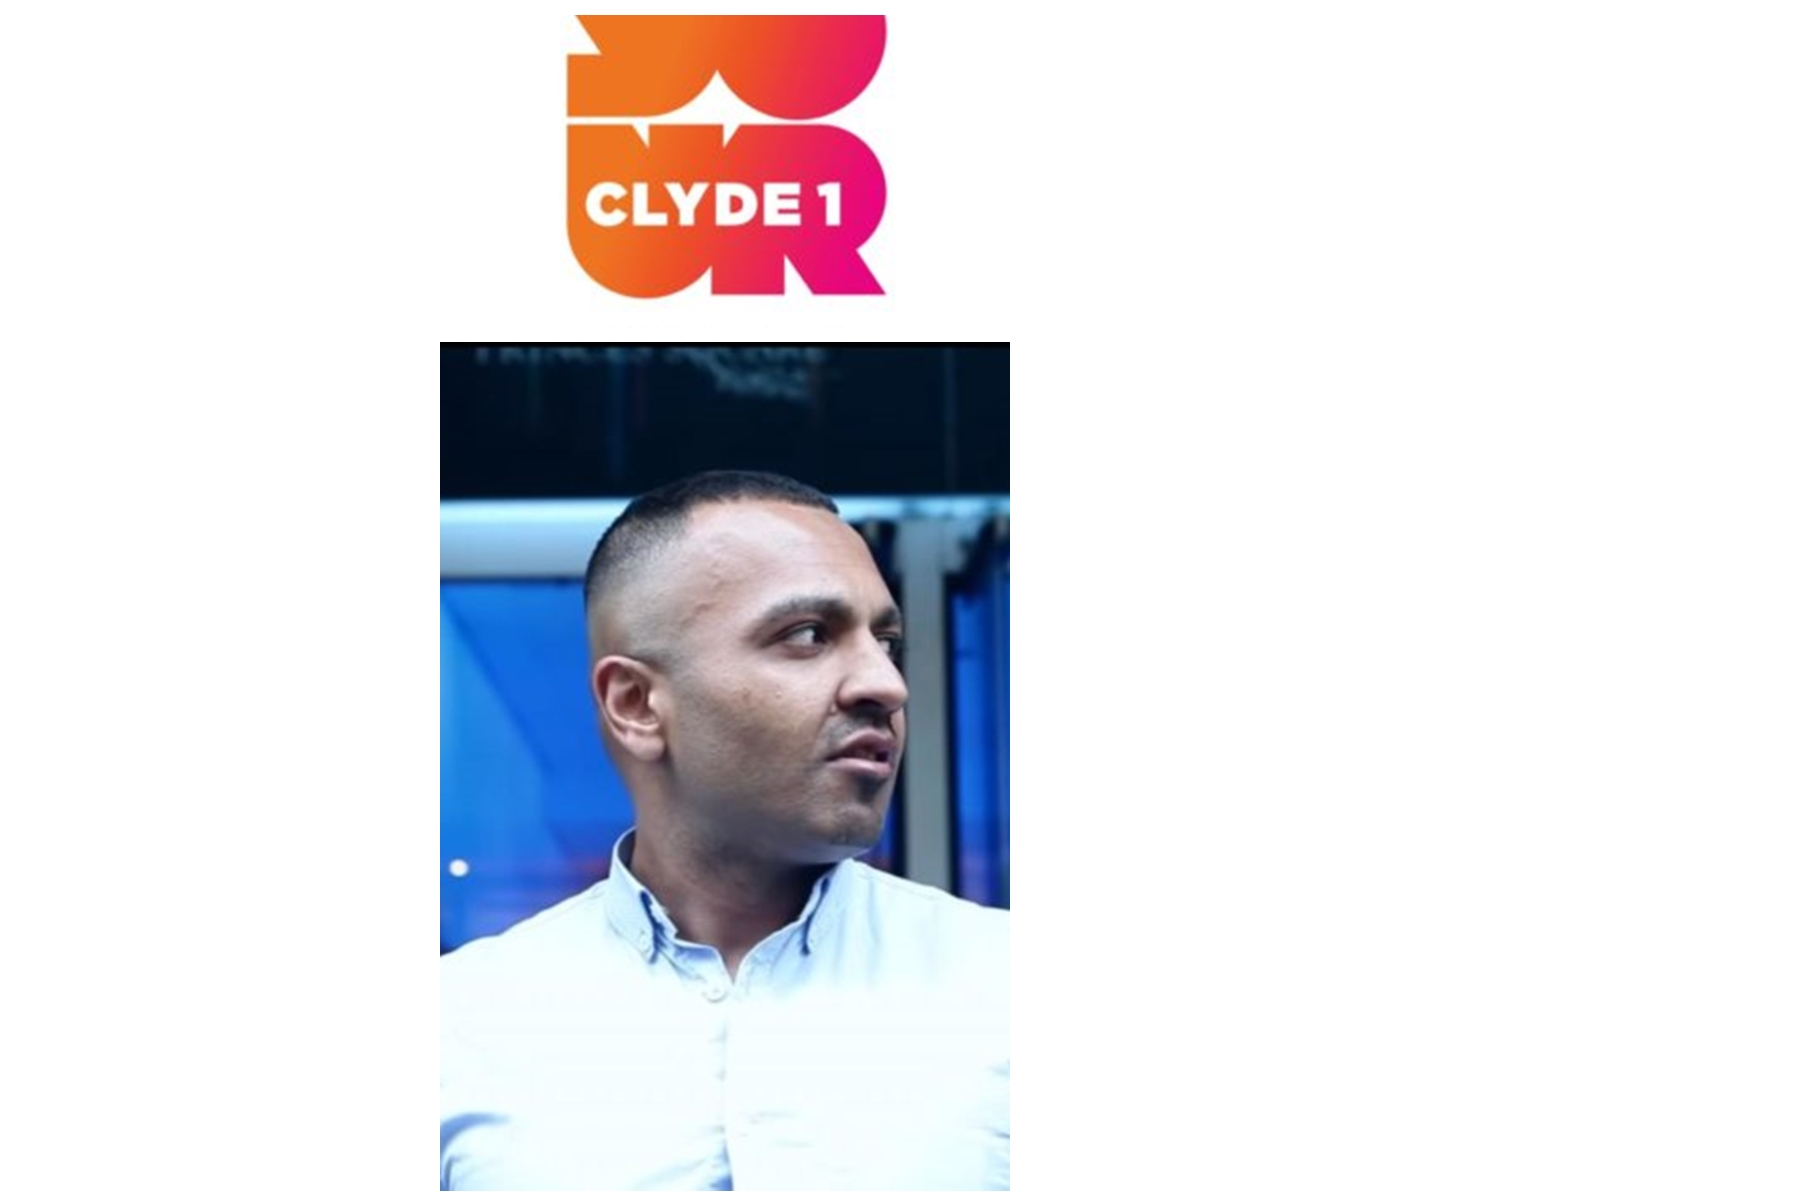 Clyde 1 Falsely Report Aspects Of Adnan Ahmed Trial (Not Guilty!) Claiming Student Felt Uncomfortable After Being Approached In A Glasgow Street